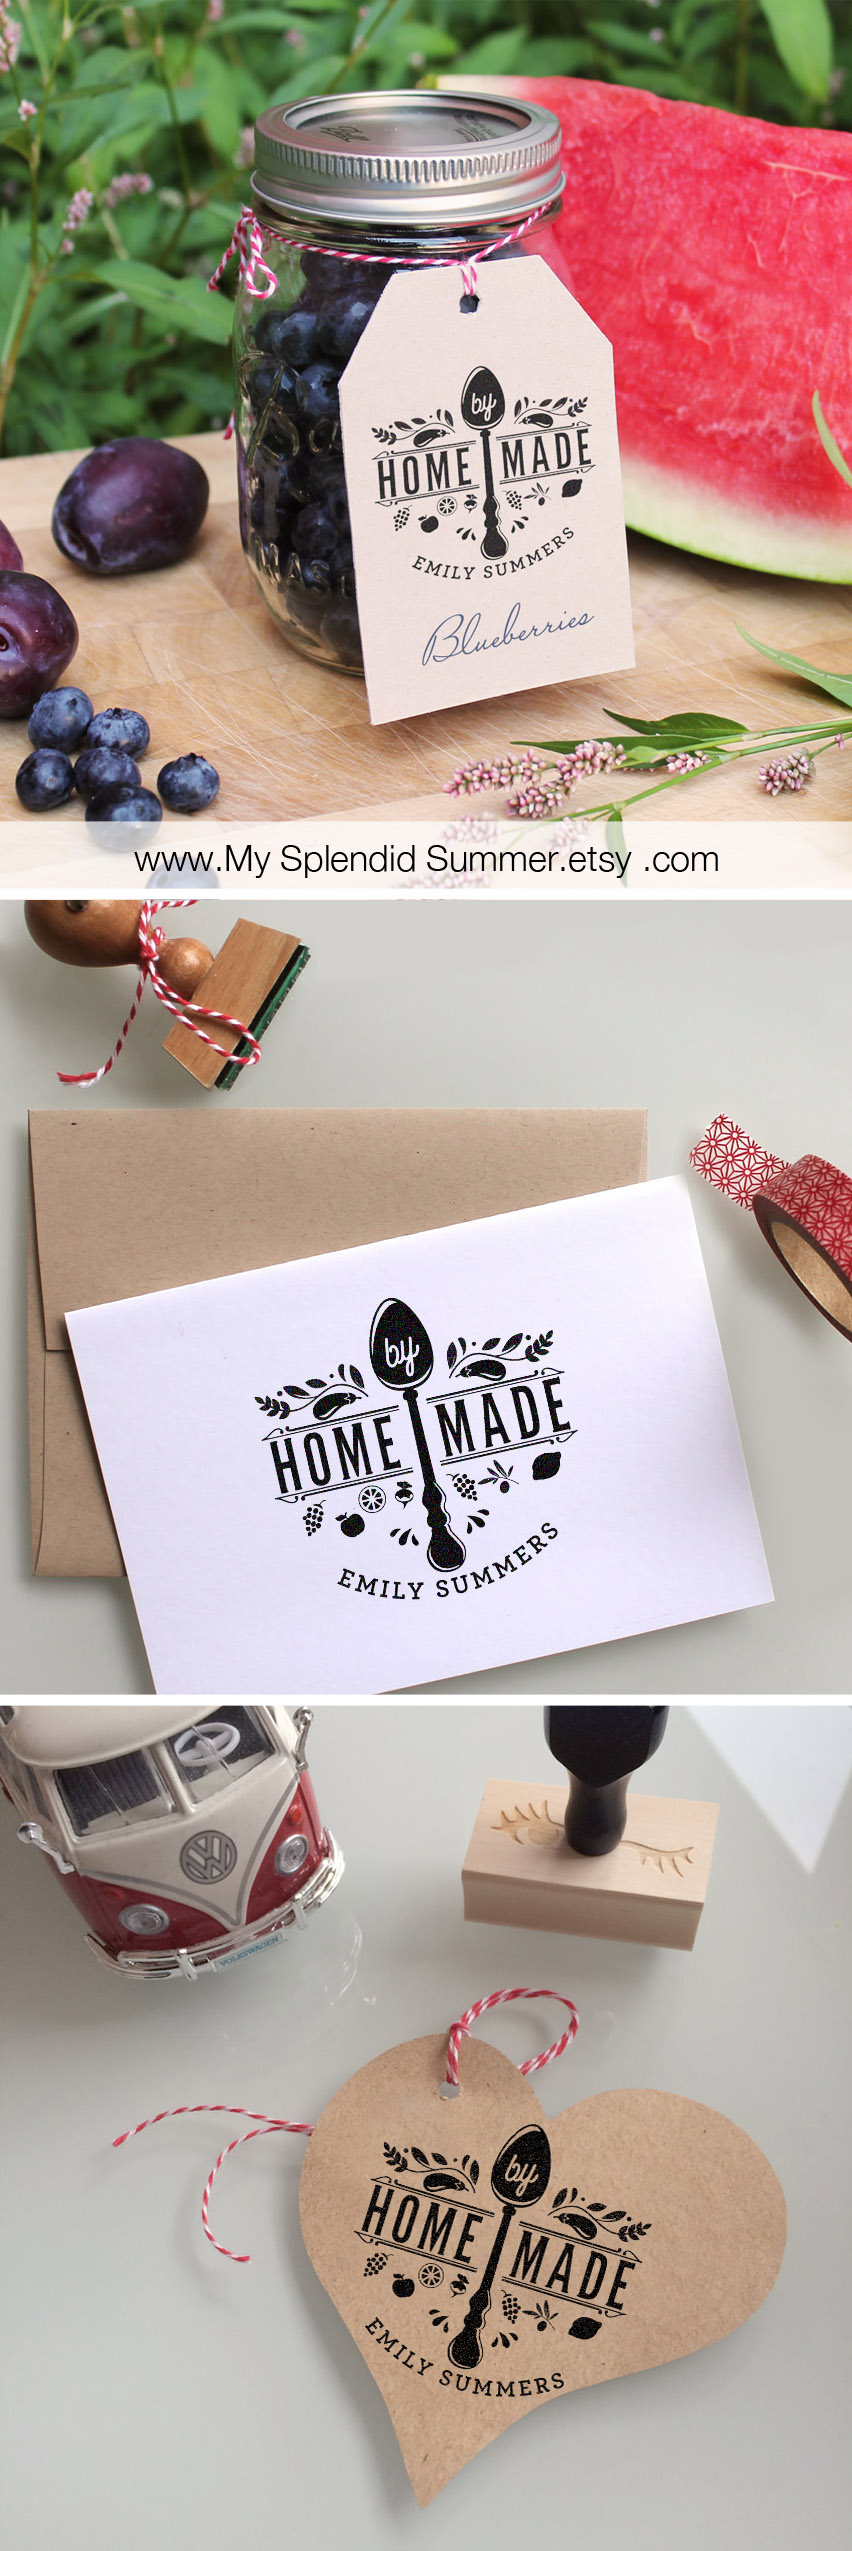 Custom business greeting cards name christmas group games for custom homemade by rubber stamp in a cute design with your name a394569f4381a80aa3e57bf220695141 24910604166708154 custom business greeting cards name magicingreecefo Gallery